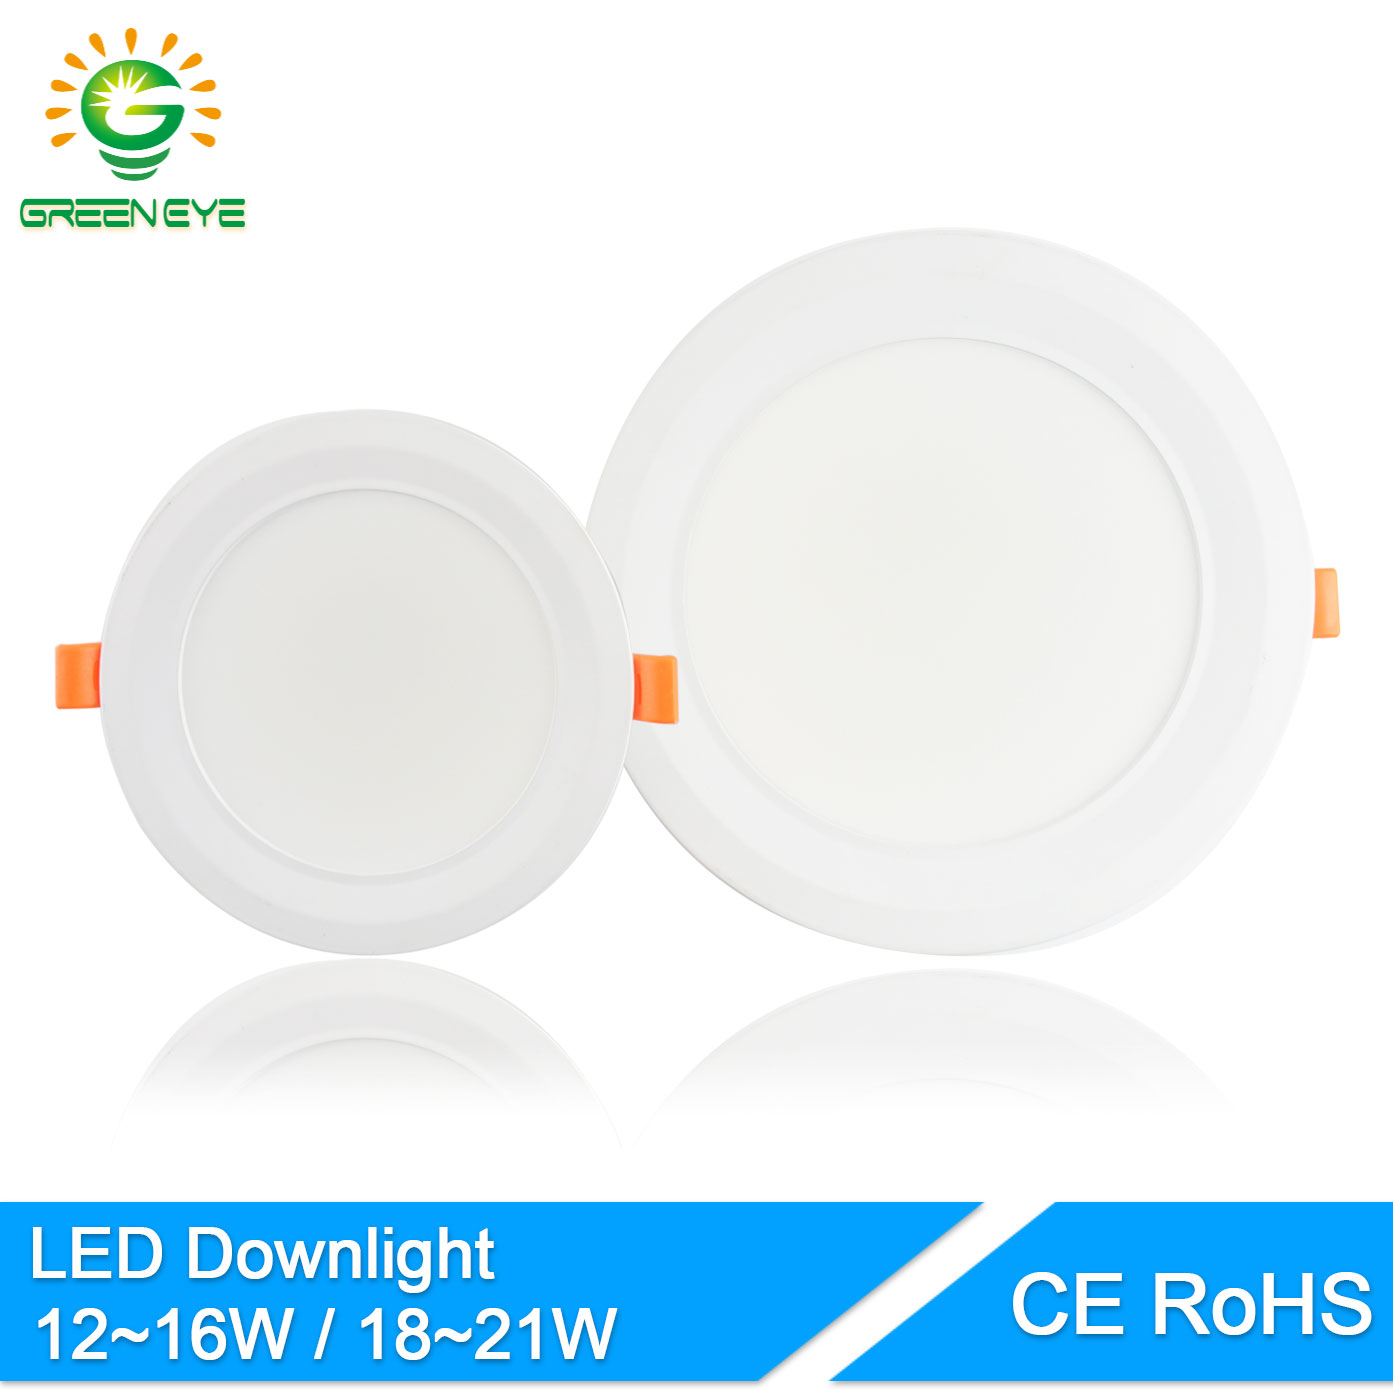 GreenEye Ultra Bright 12w 18w 6 / 7.5Inch Aluminio Downlight LED 220v Spot Plafón LED Down Light Lámparas Iluminación Blanco frío cálido